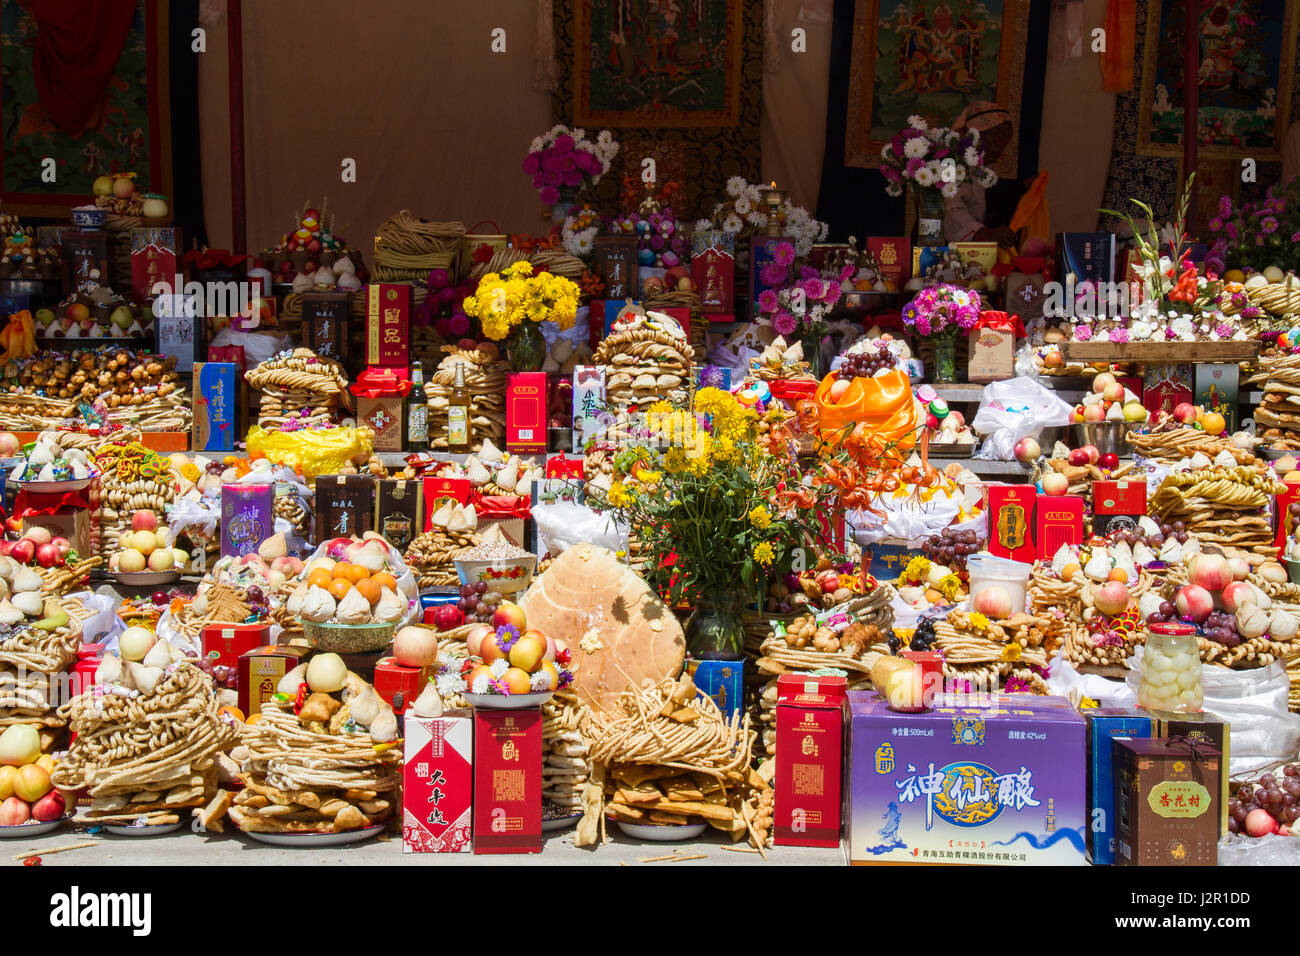 A large quantity of food offered at a Buddhist Ritual Ceremony in a Buddhist region of Qinghai Province in China - Stock Image